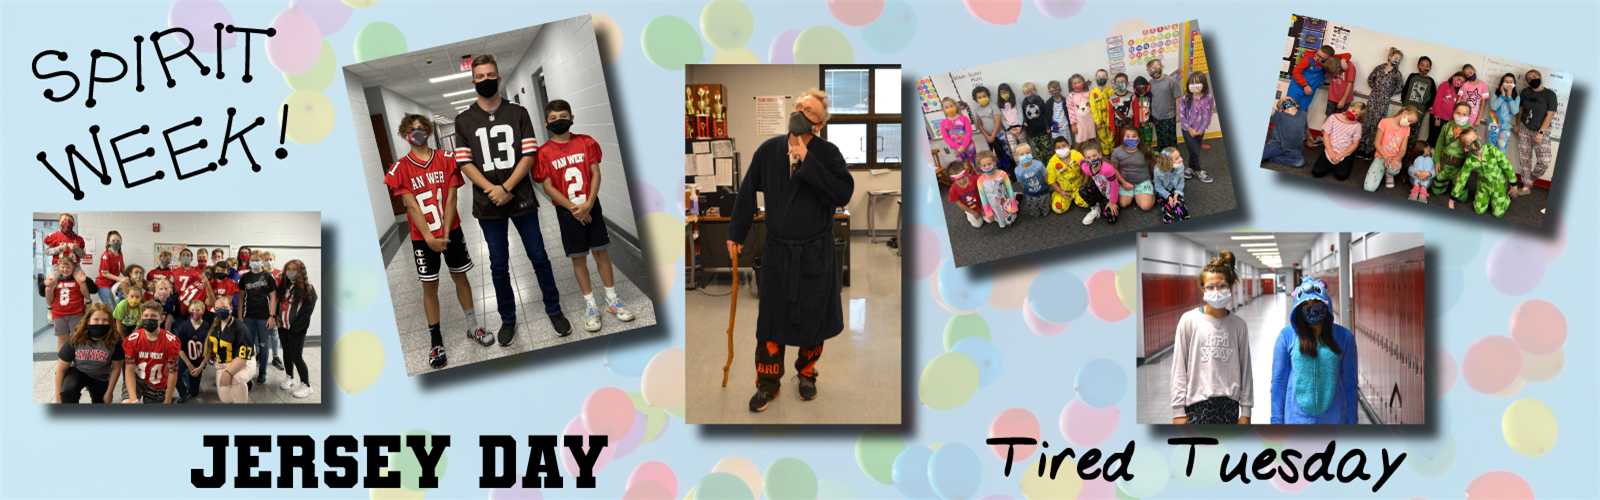 Various pictures of staff and students dressed up for spirit week (Jersey Day and Tired Tuesday)